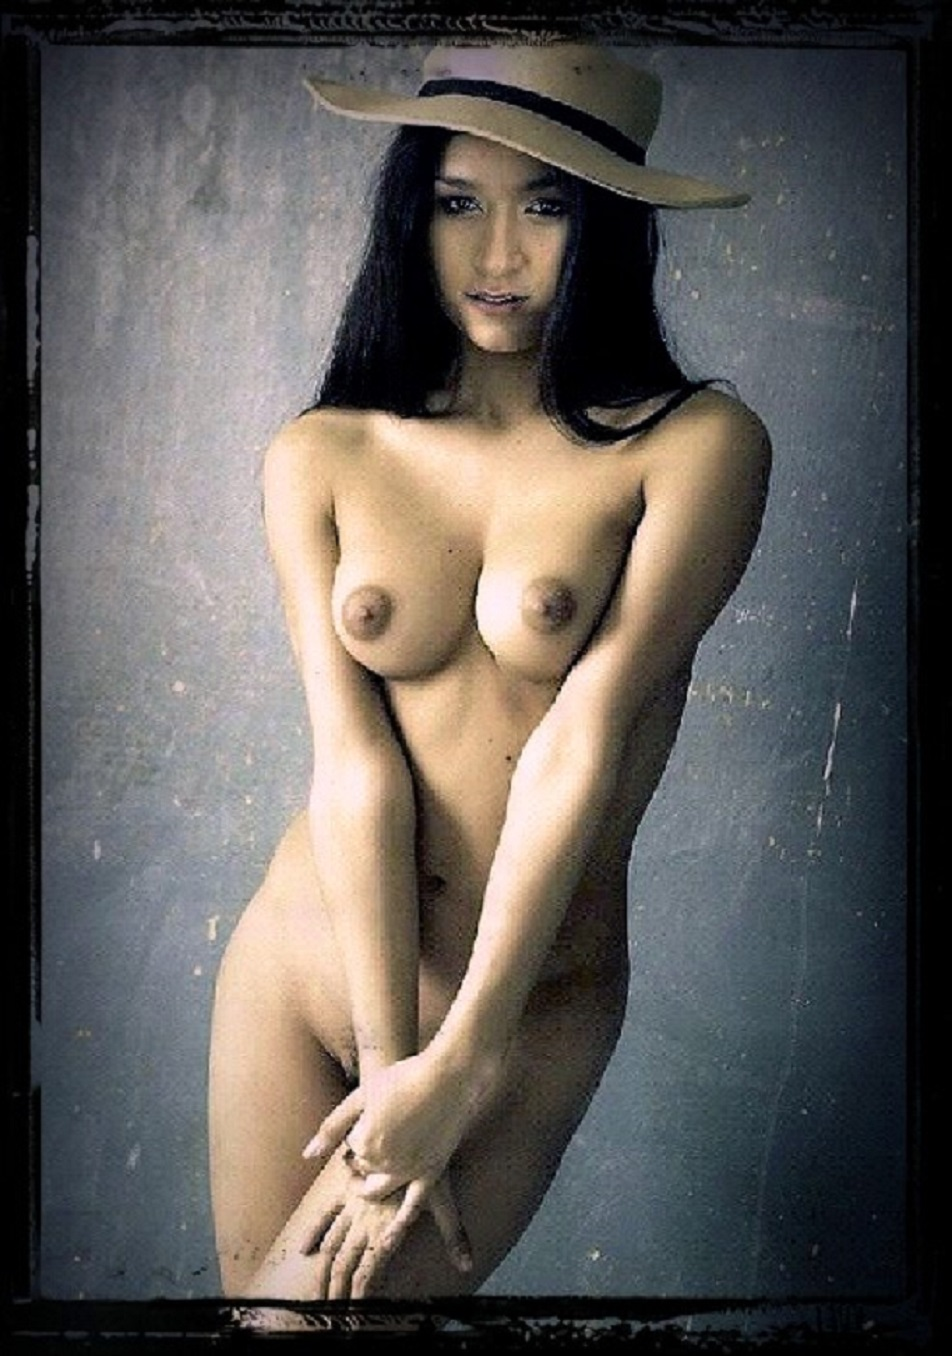 Rachel clift nude